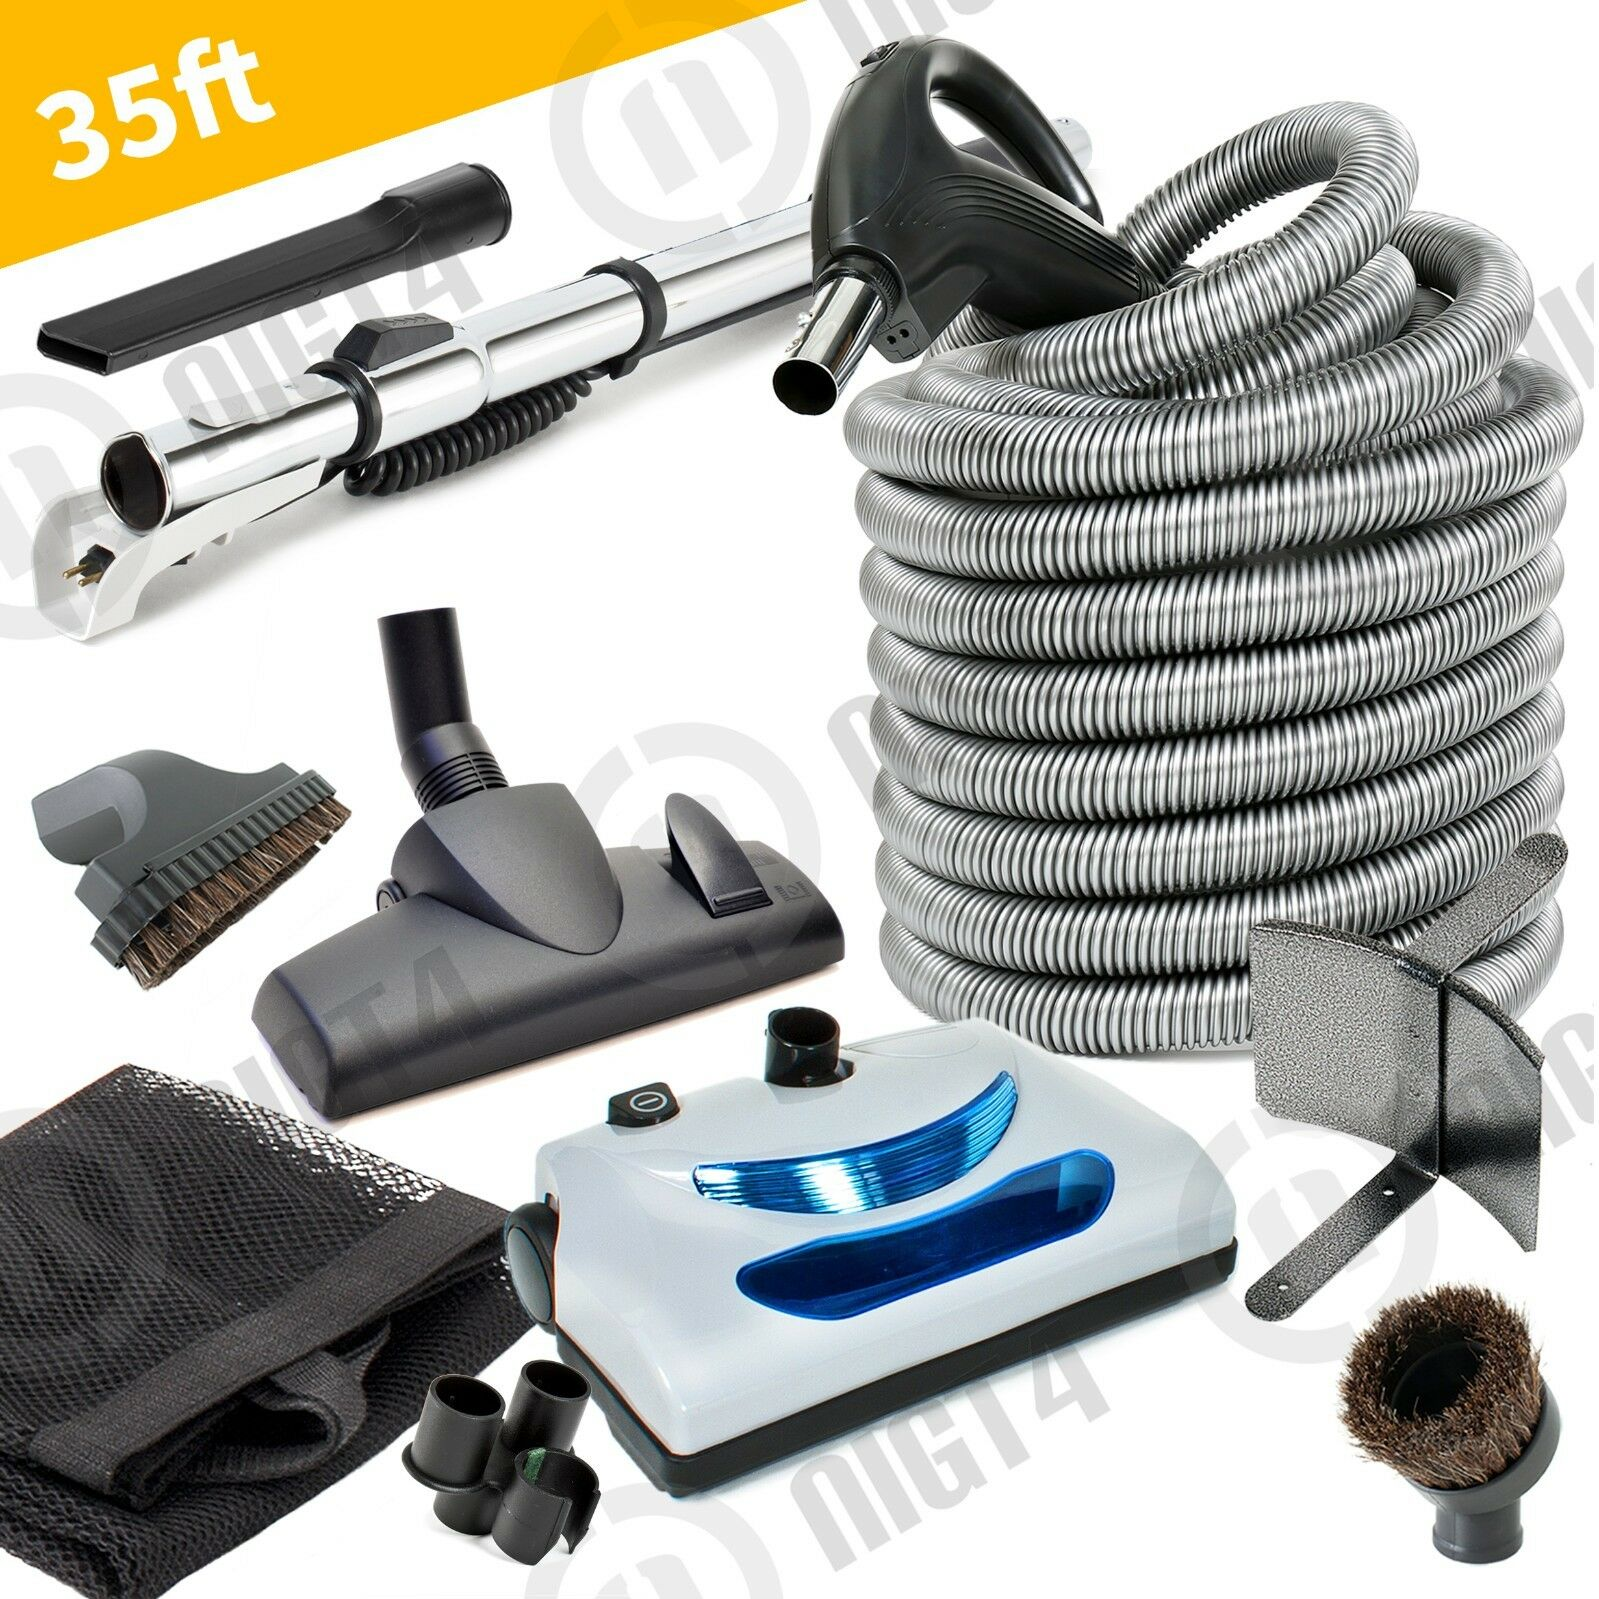 Deluxe Central Vacuum Electric Powerhead 35 Hose and Cleaning Tools Kit  NEW